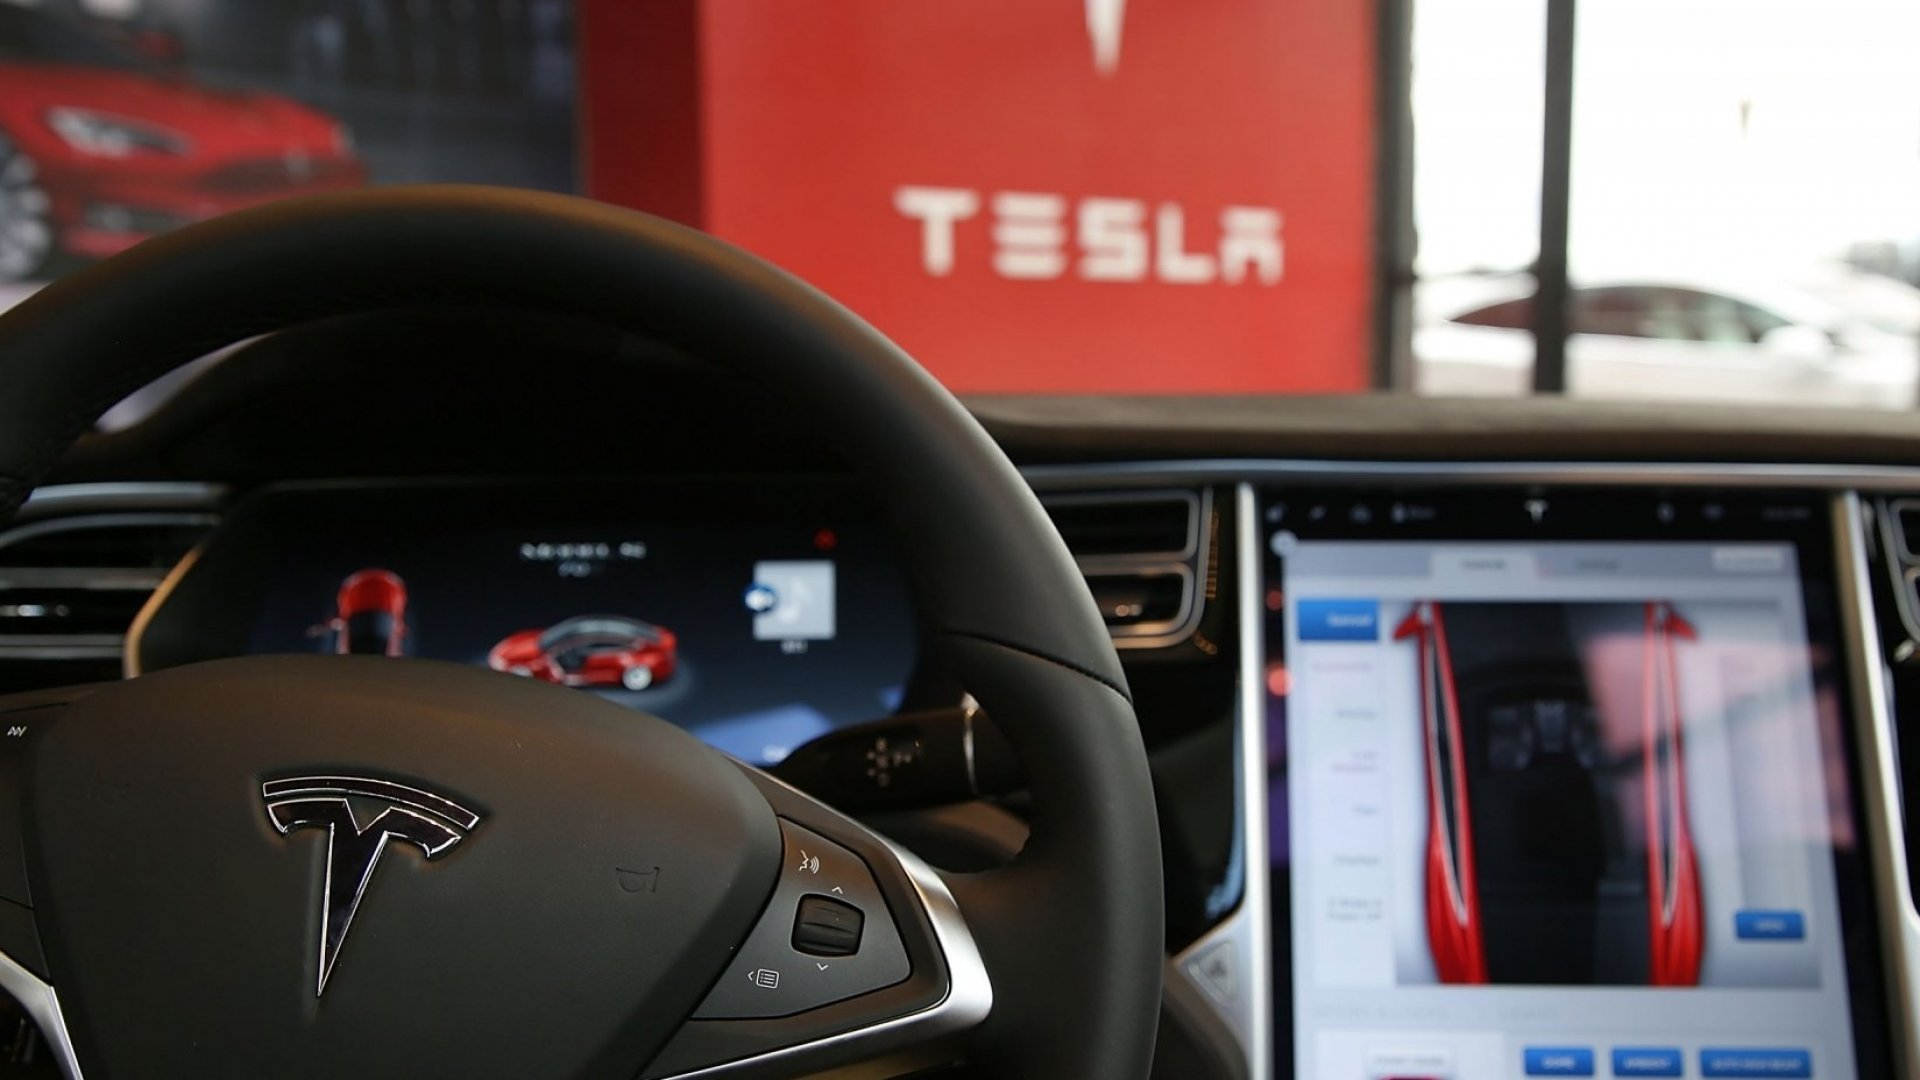 Behind the wheel of a Tesla. Could hackers seize control?